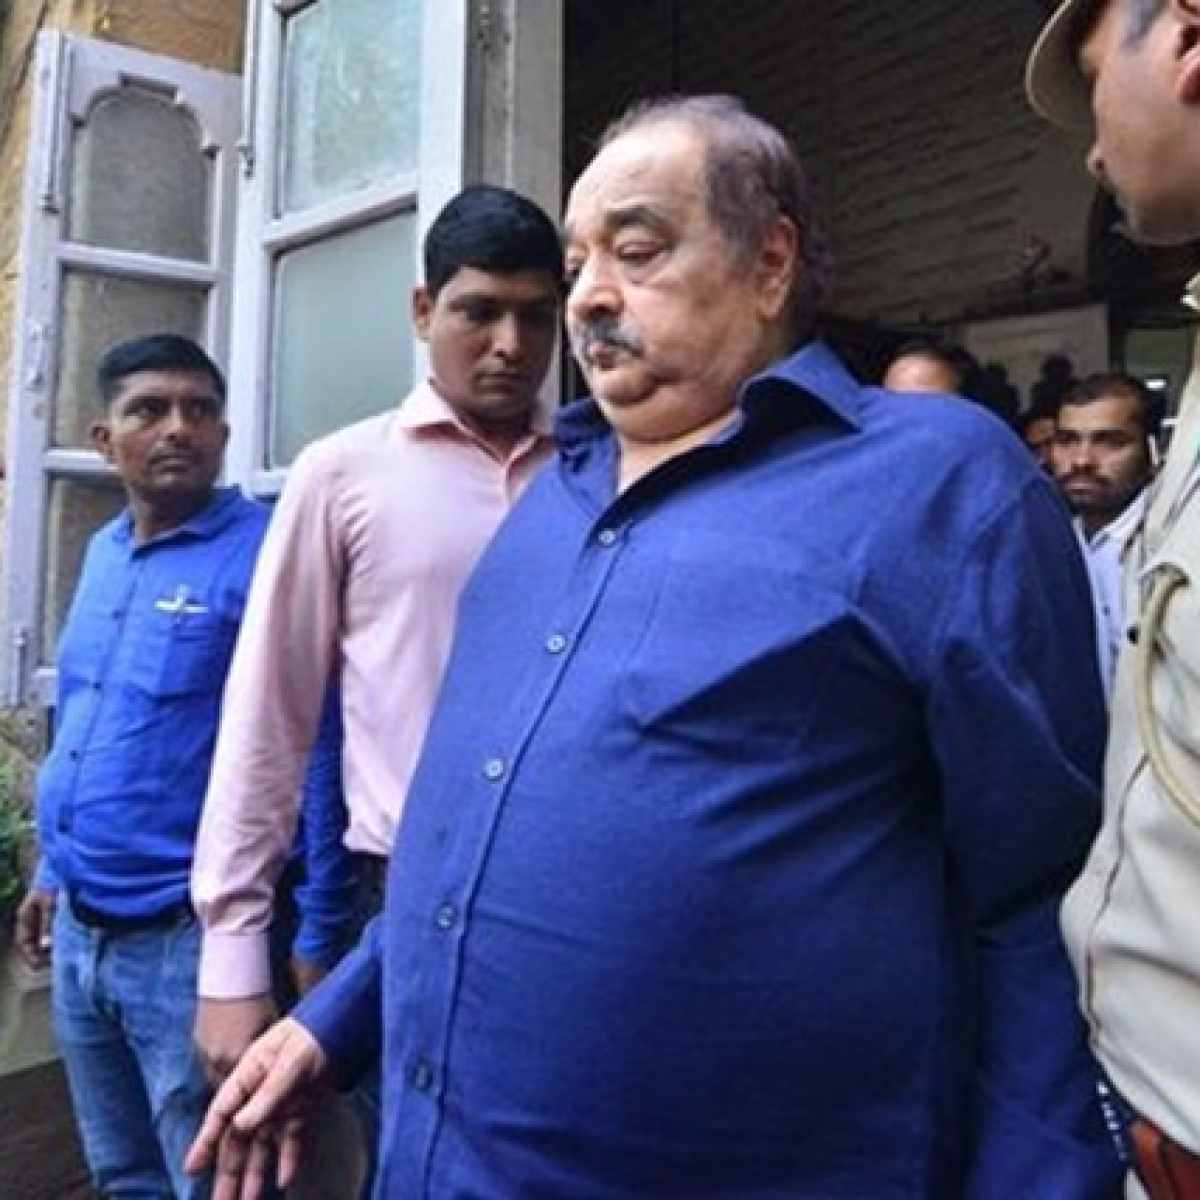 Rakesh - Sarang Wadhawan bail pleas: 'Cannot shirk responsibility, you are hand-in-glove with PMC officials', says Court